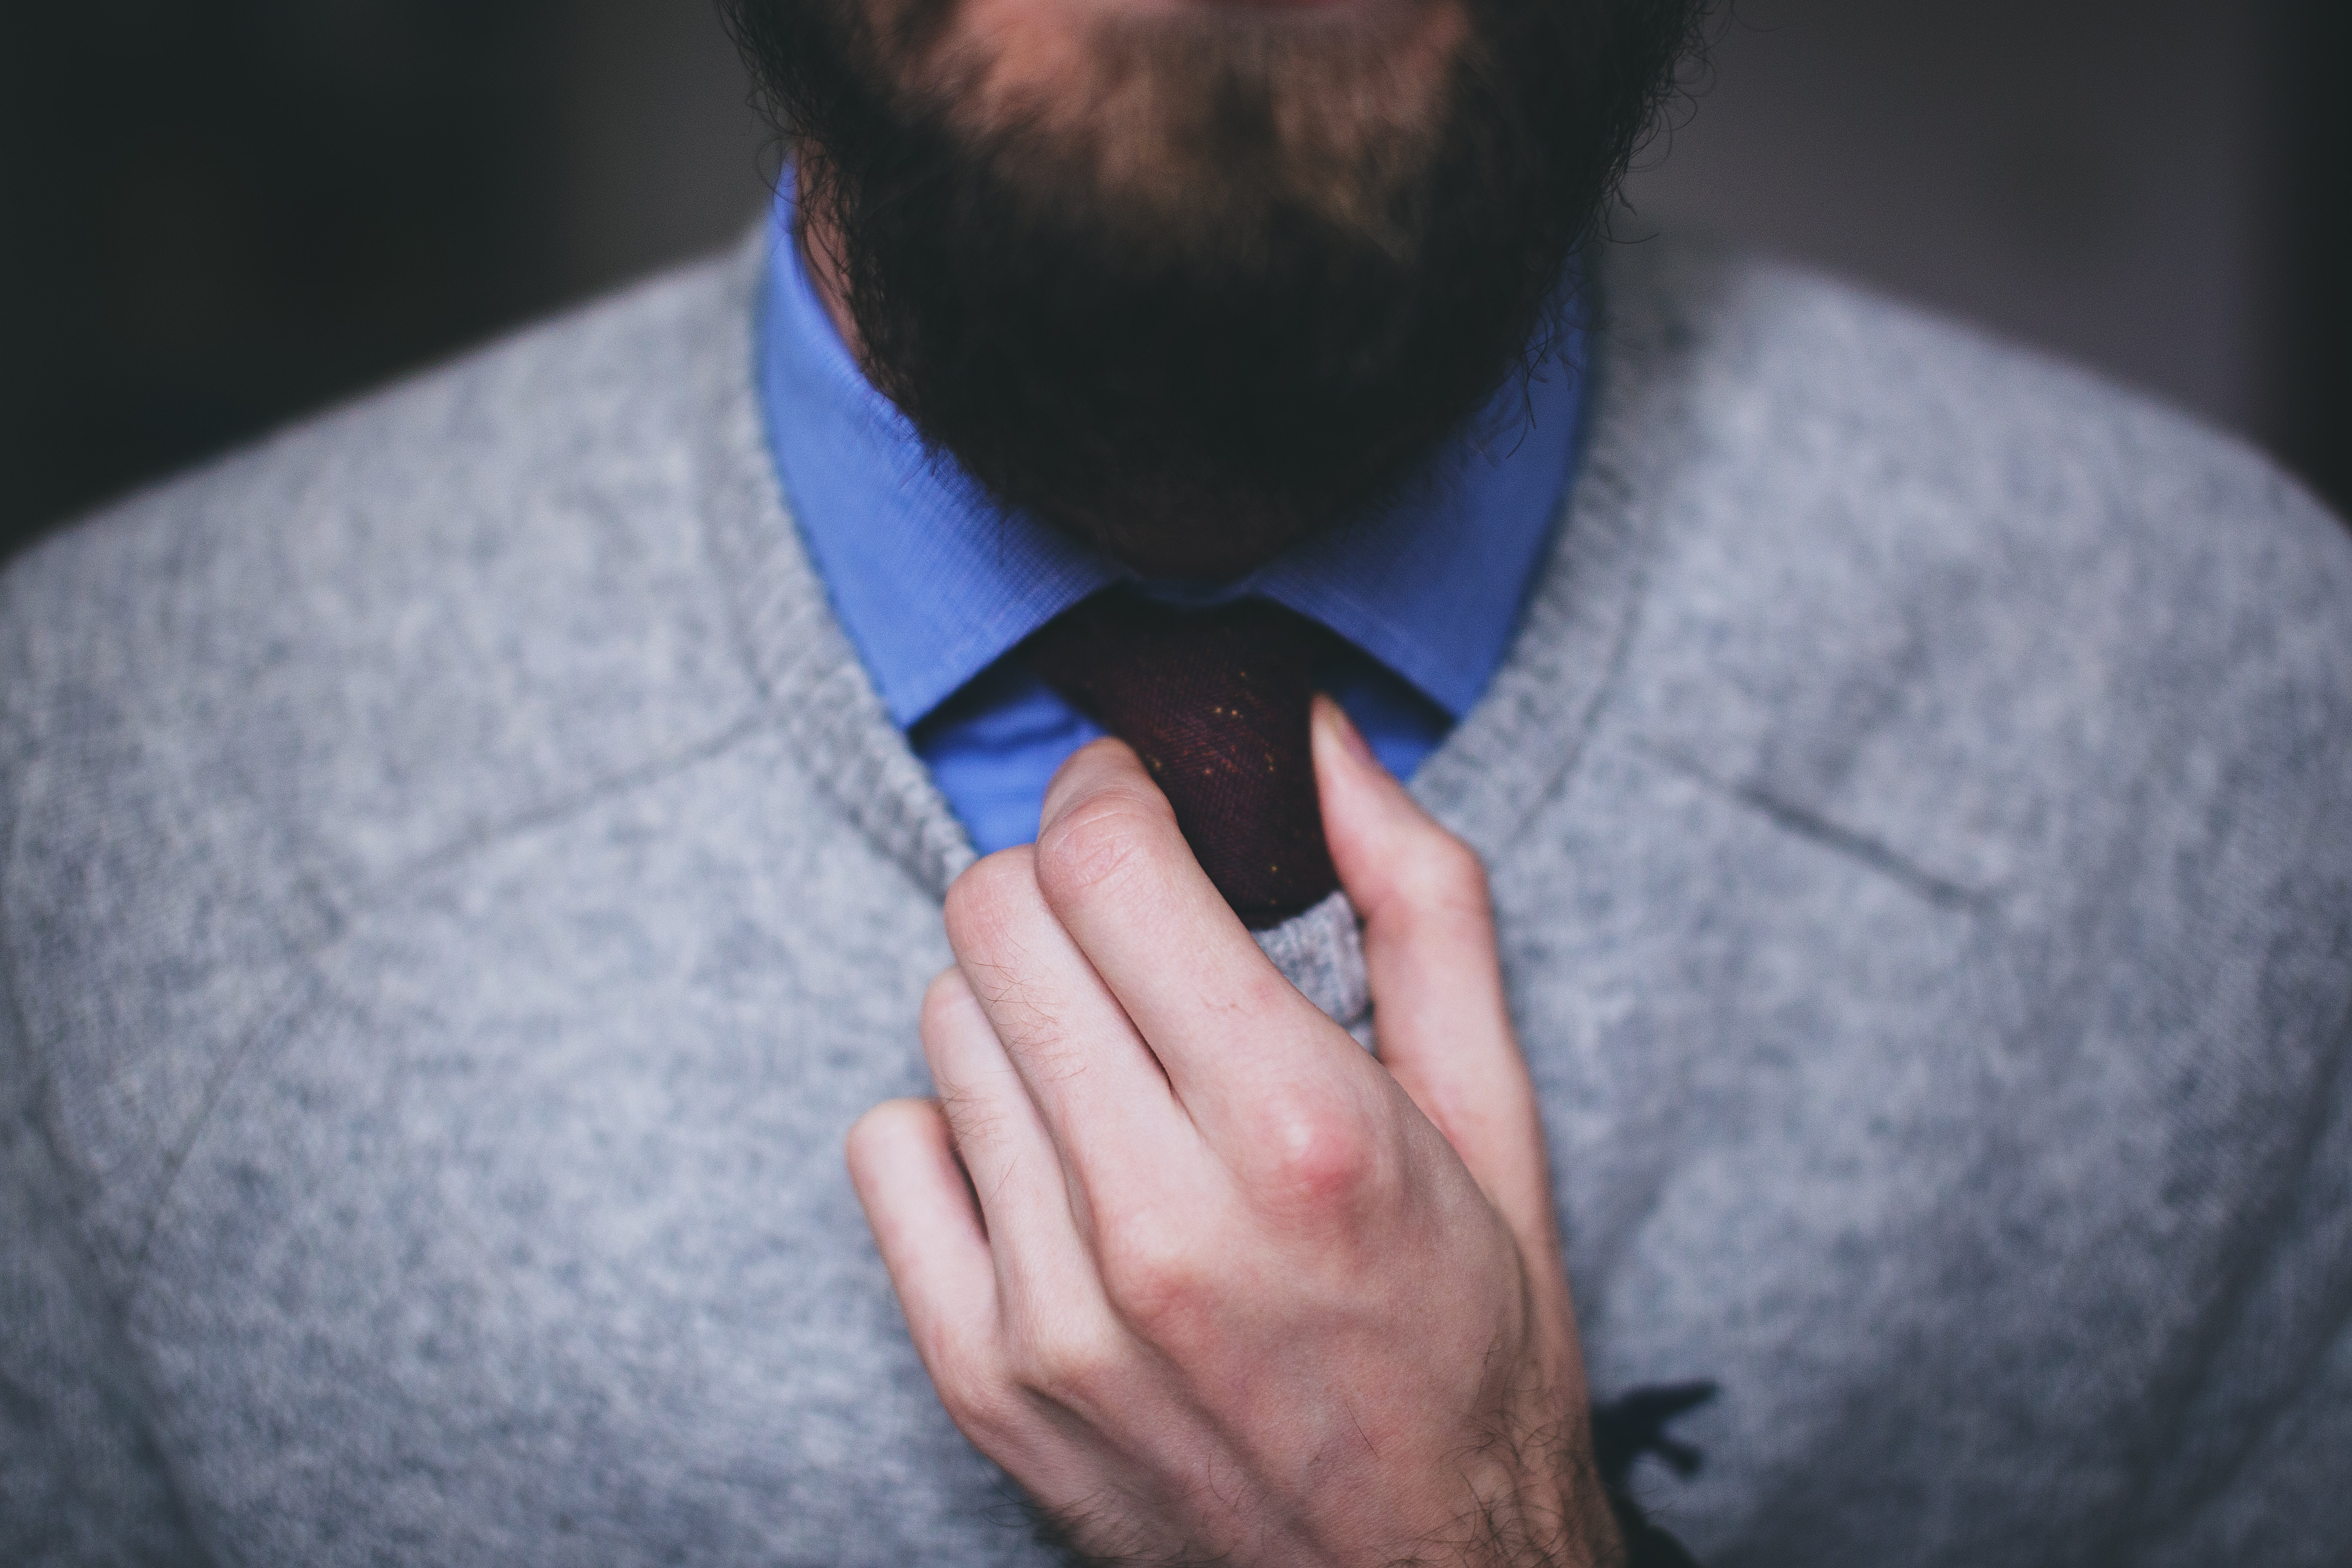 Man wears a sweater over his dress shirt for a business casual occassion